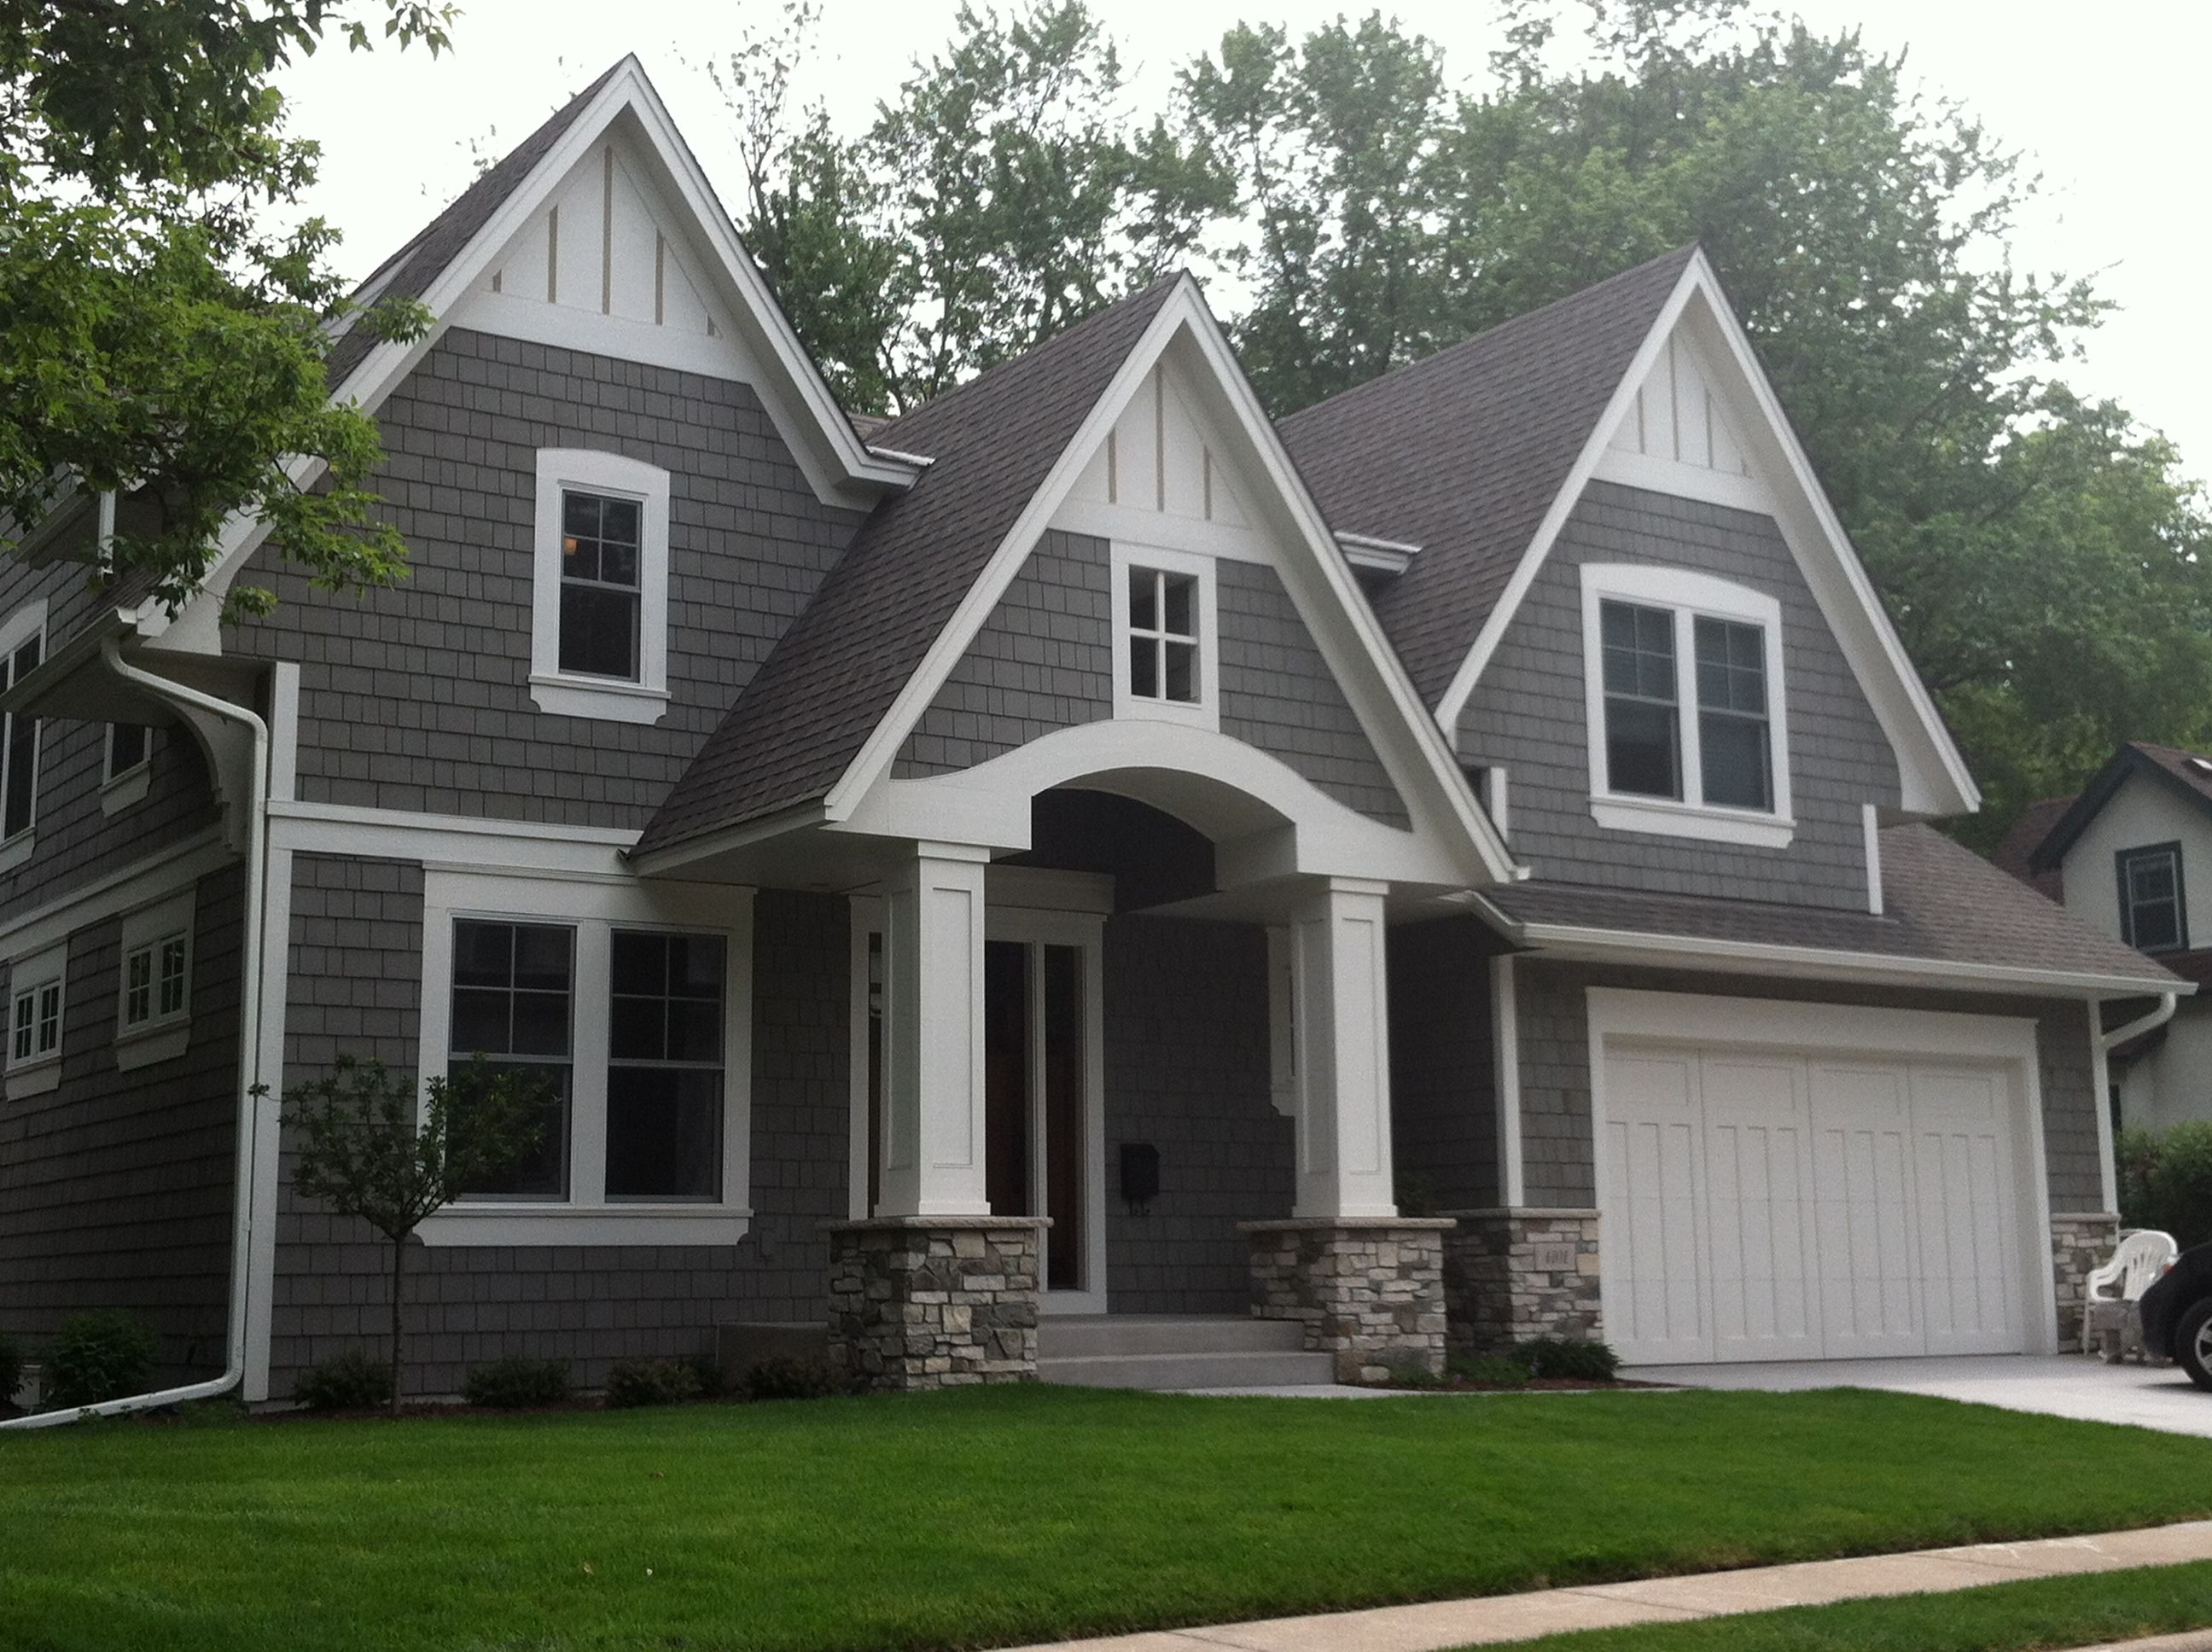 Exterior house color schemes barrier exteriors minnesota home siding exterior services - Paint colors for homes exterior style ...